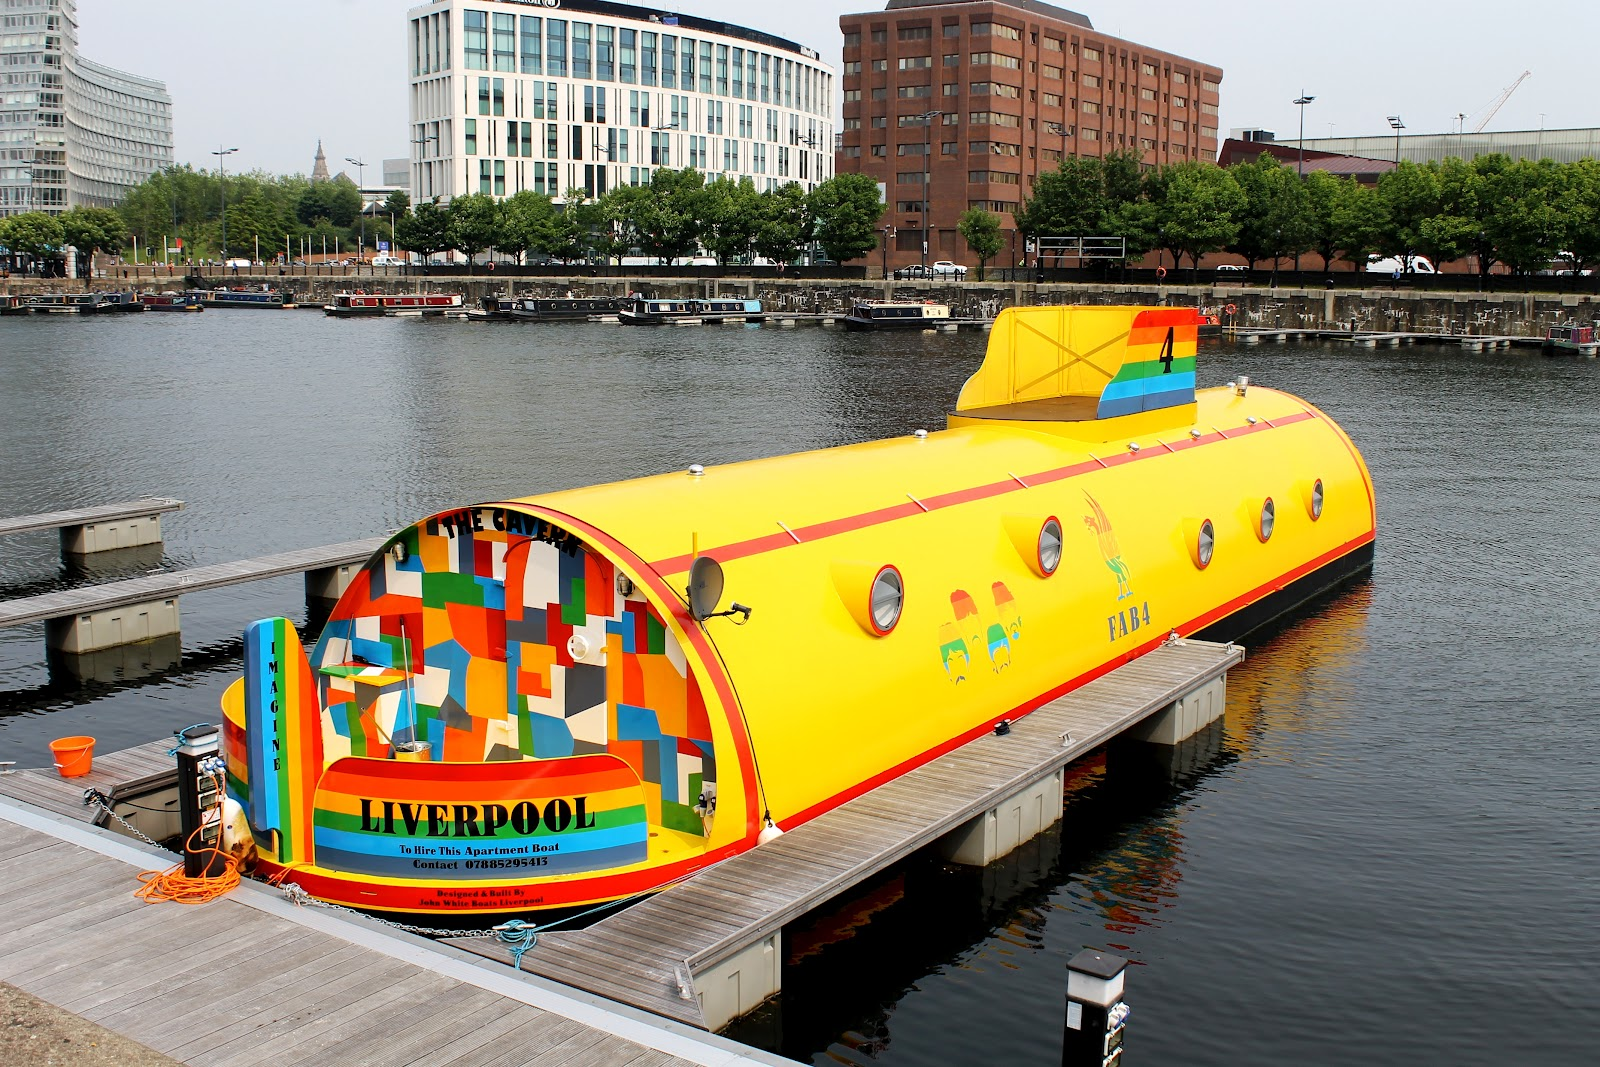 5. Yellow Submarine, Ливерпуль, Великобритания.